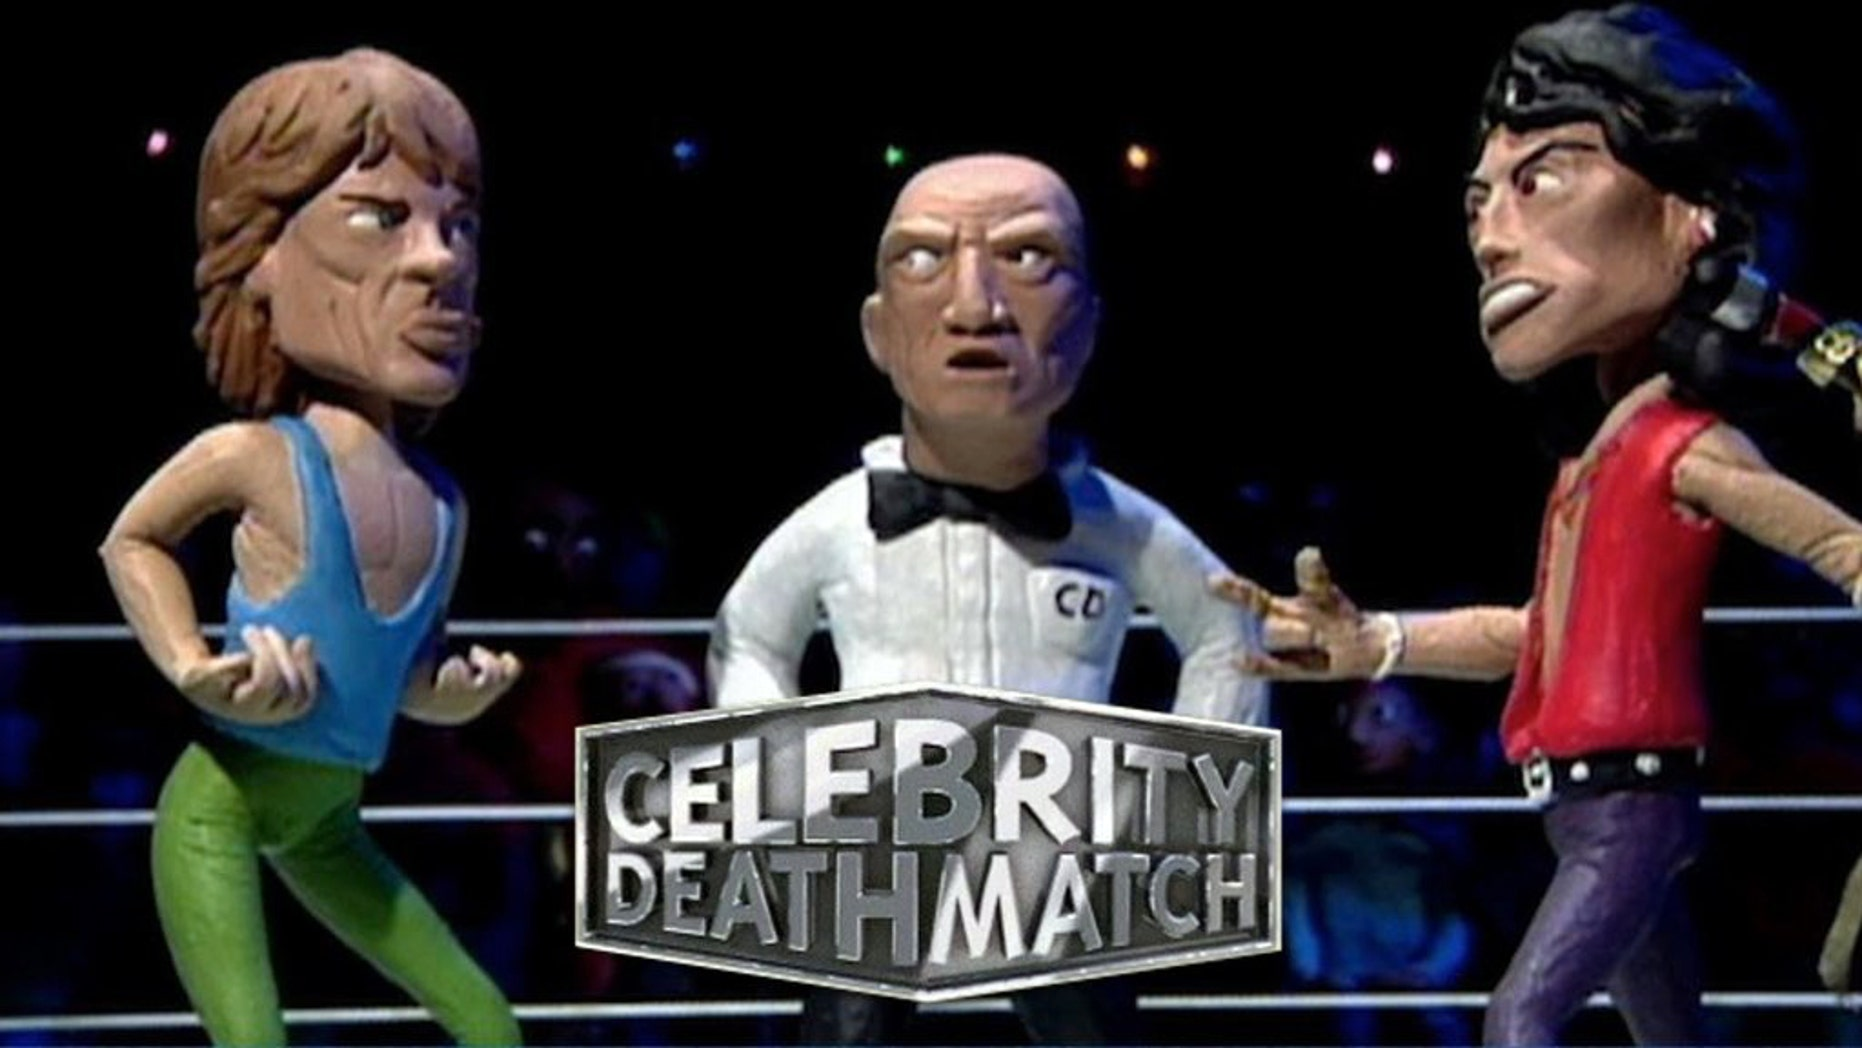 Celebrity Deathmatch - Lucy Lawless vs. Calista Flockhart ...